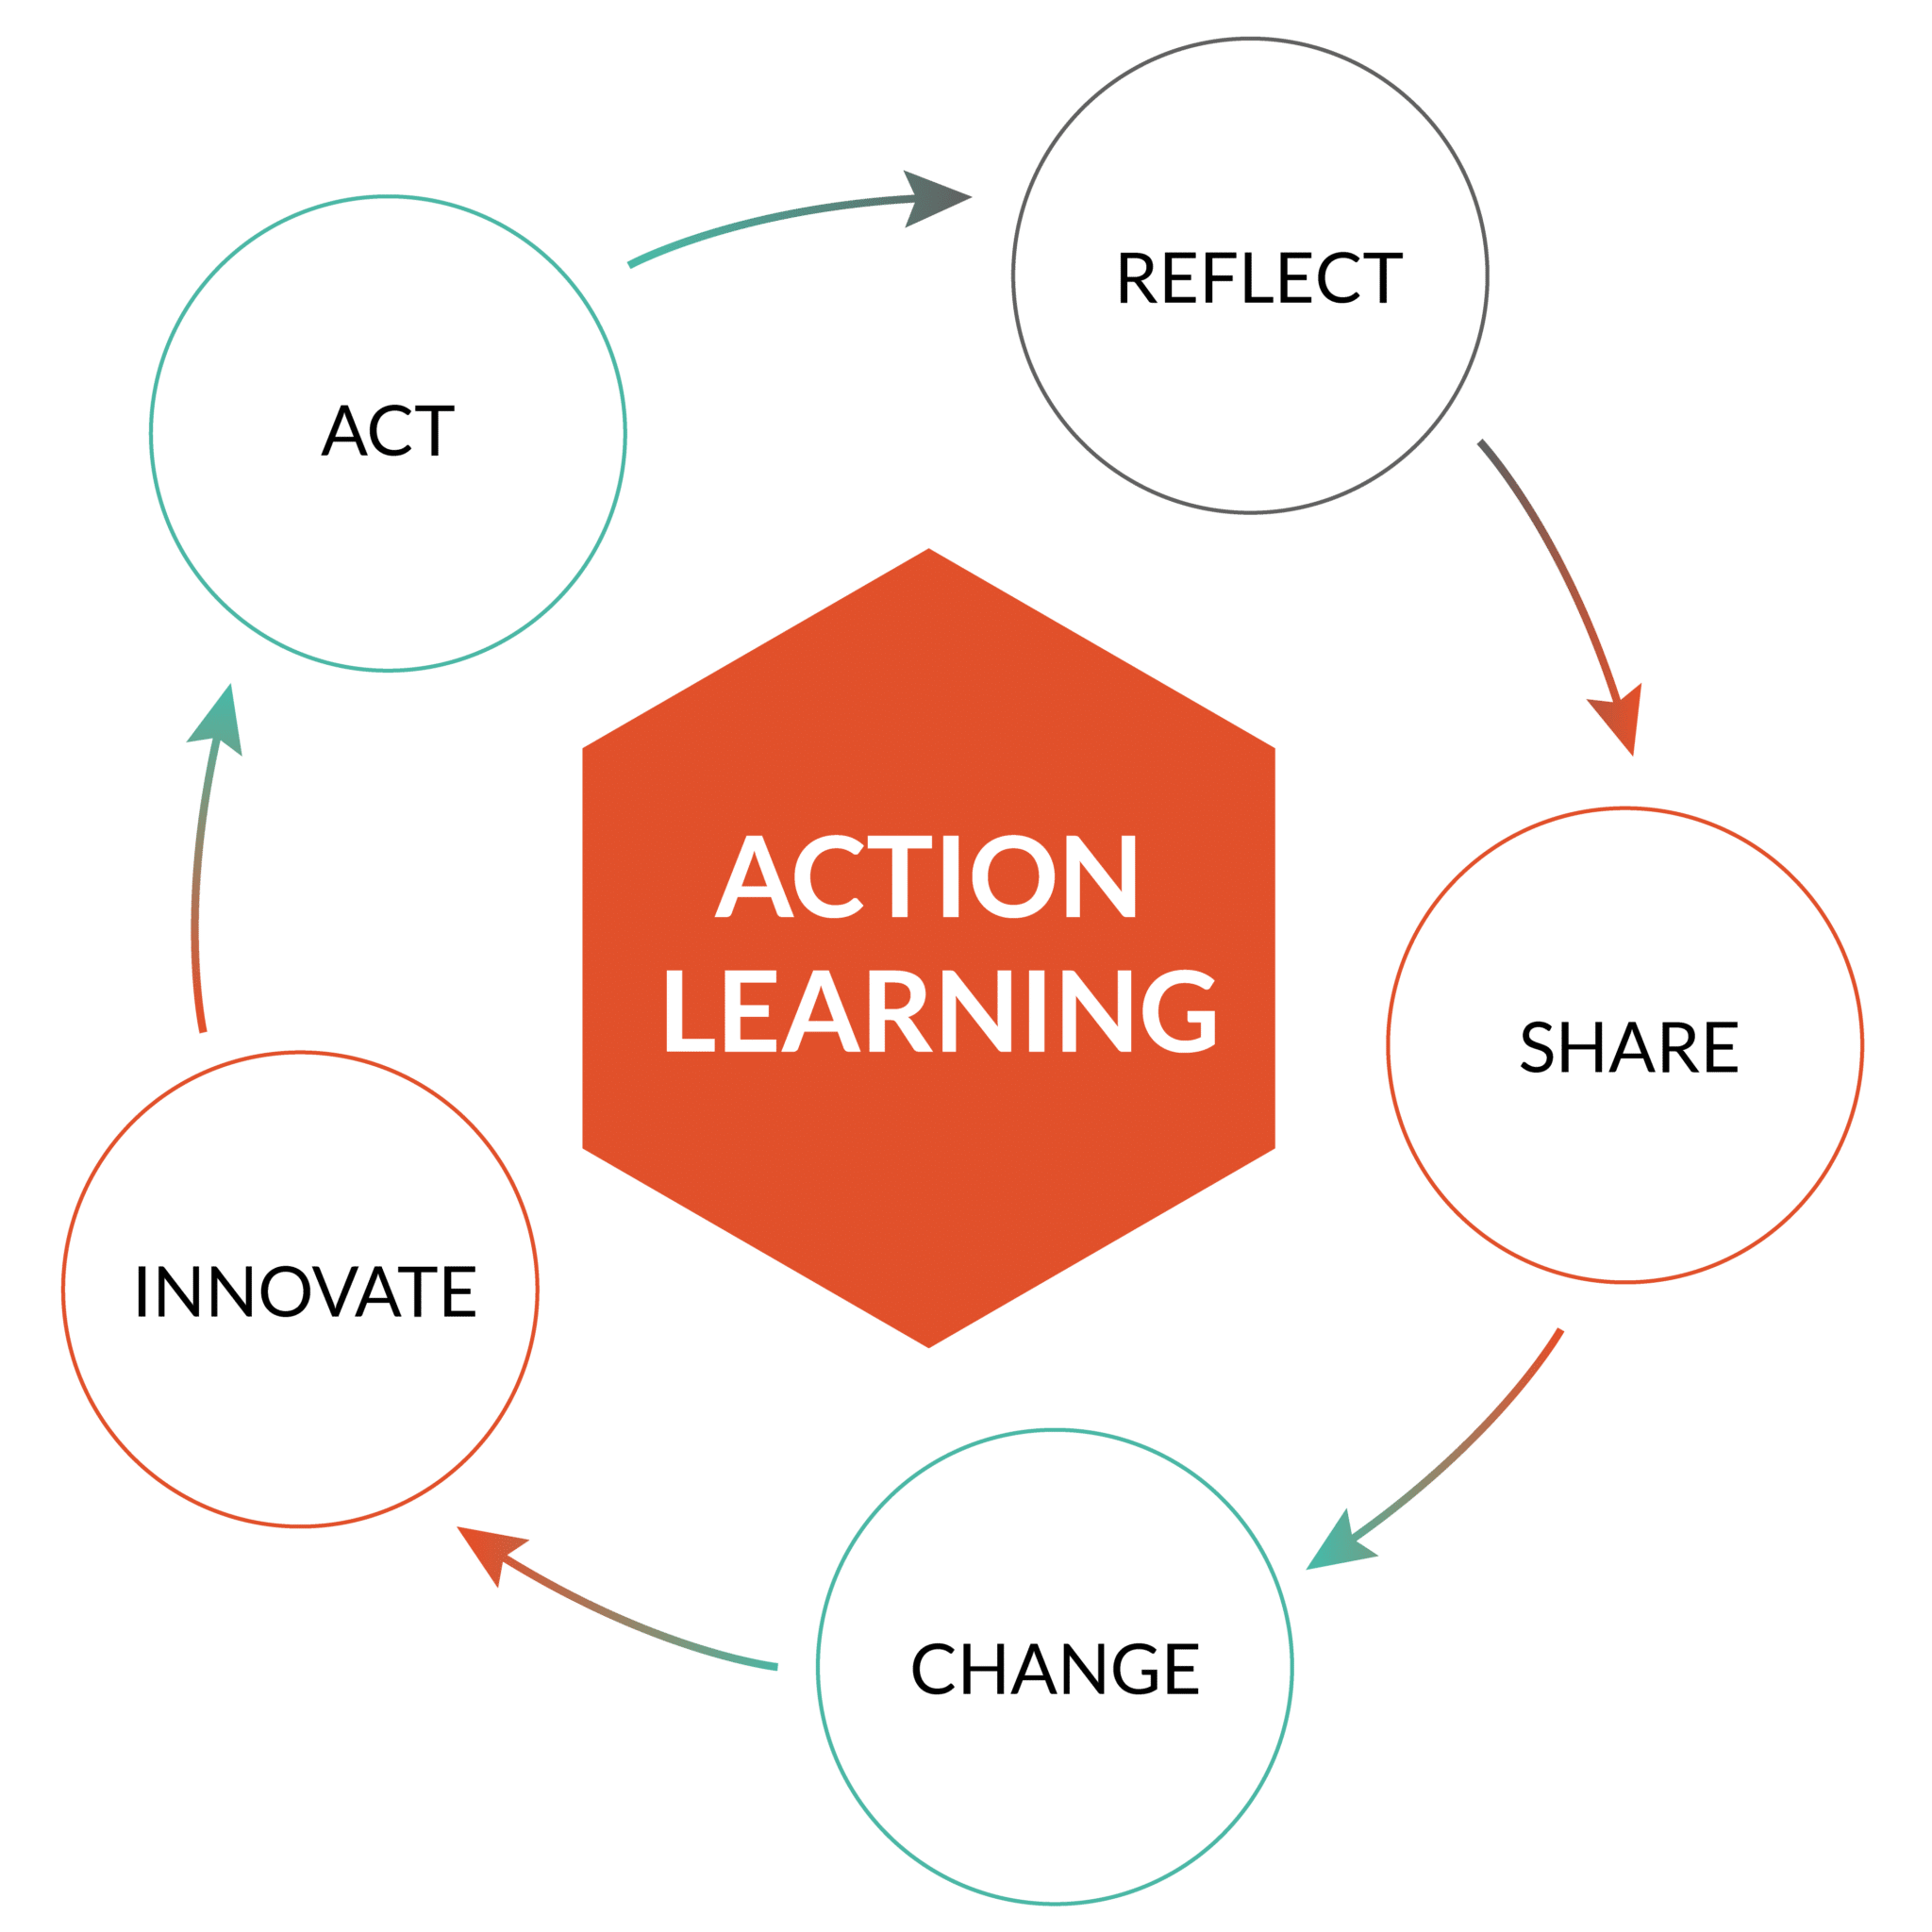 Action learning : reflect, share, change, innovate, act